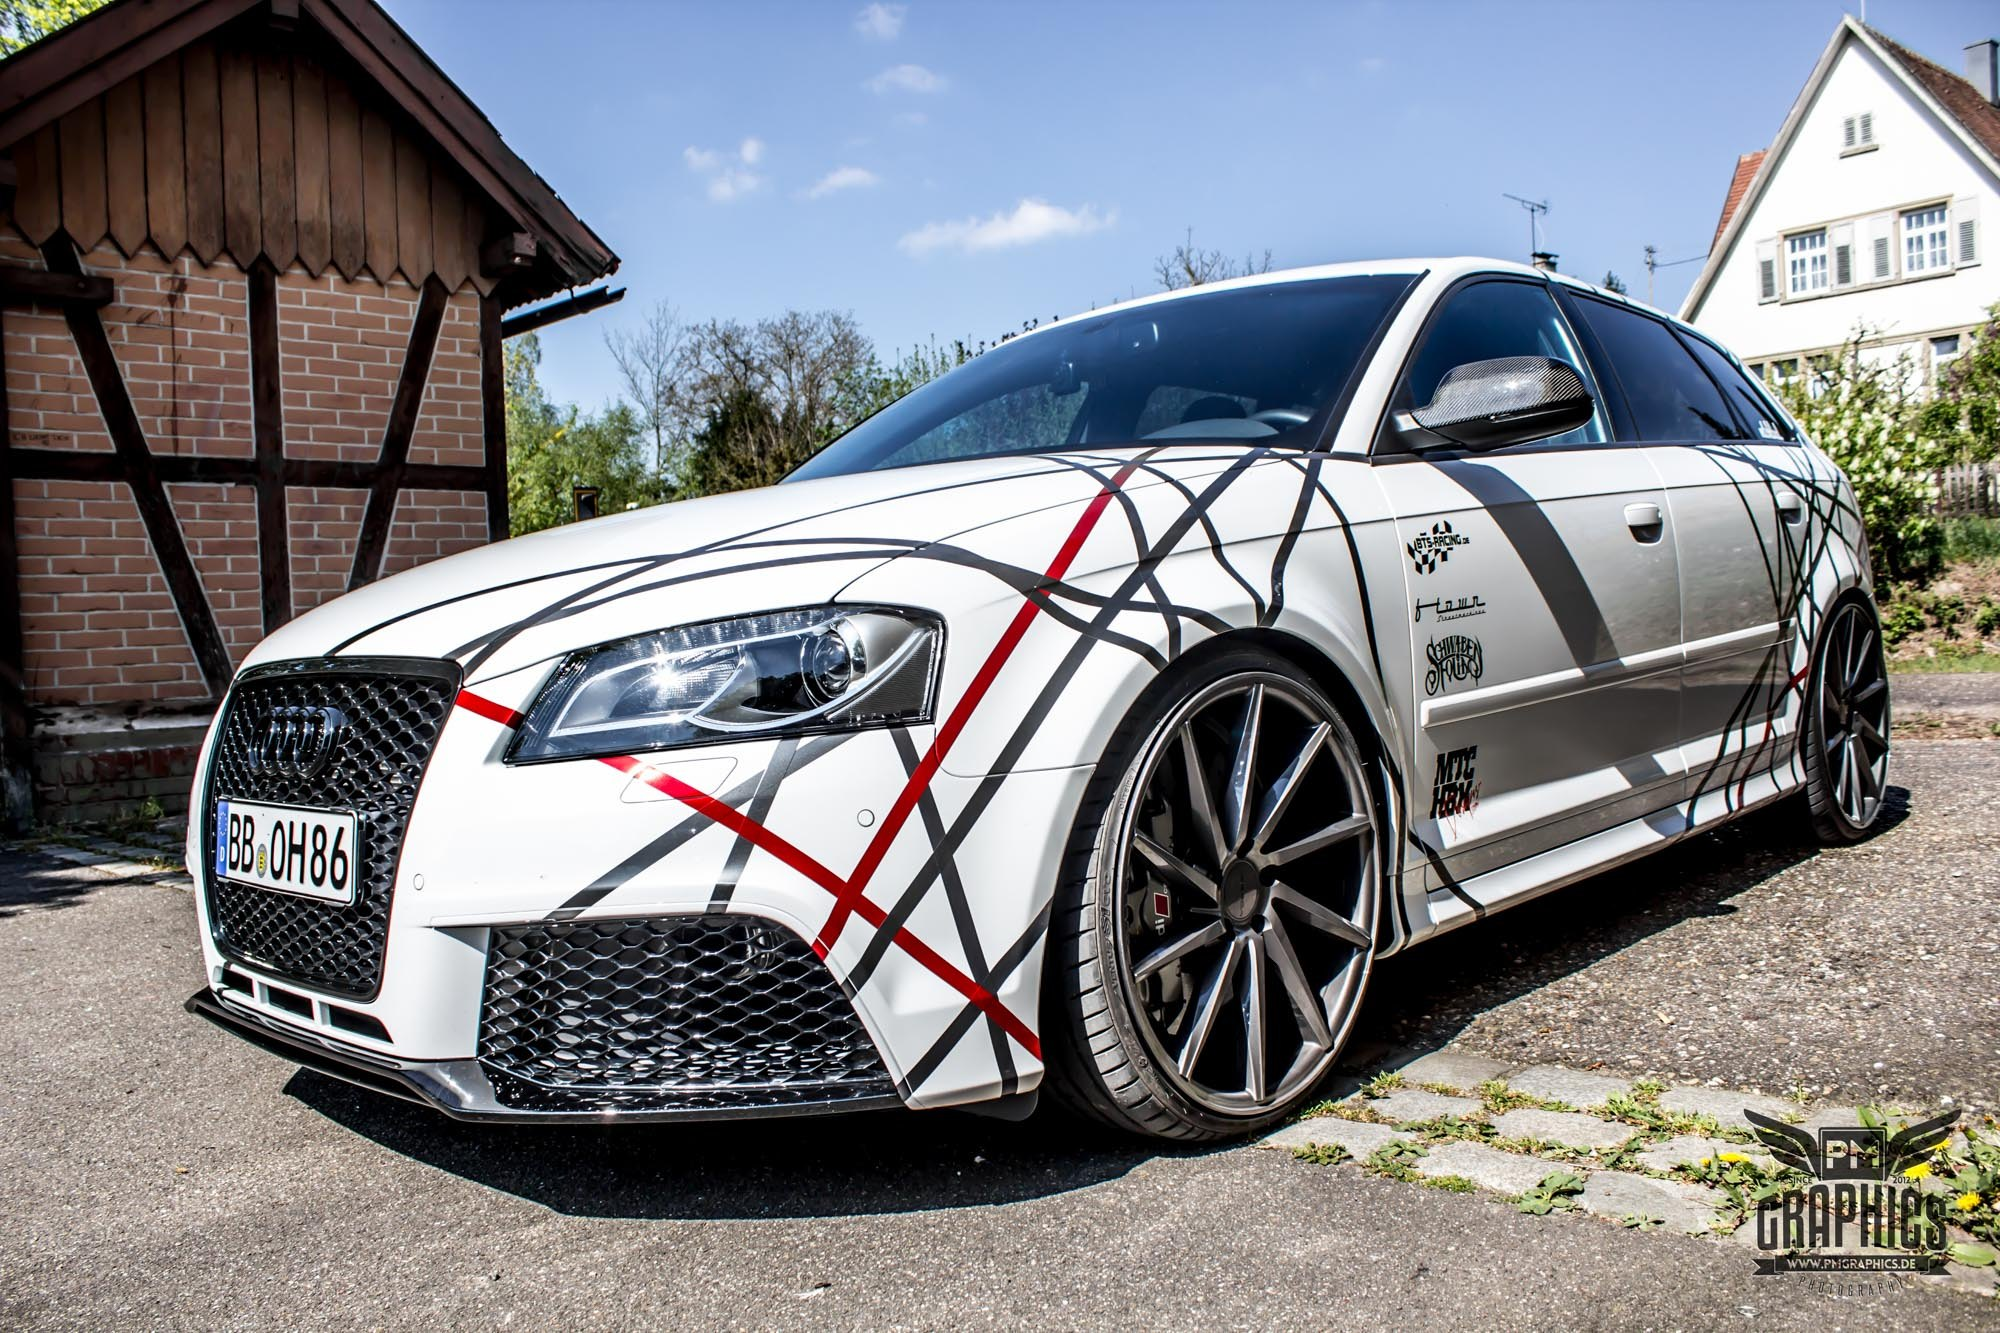 Extraordinary Custom Paint Job On Slightly Customized Audi S3